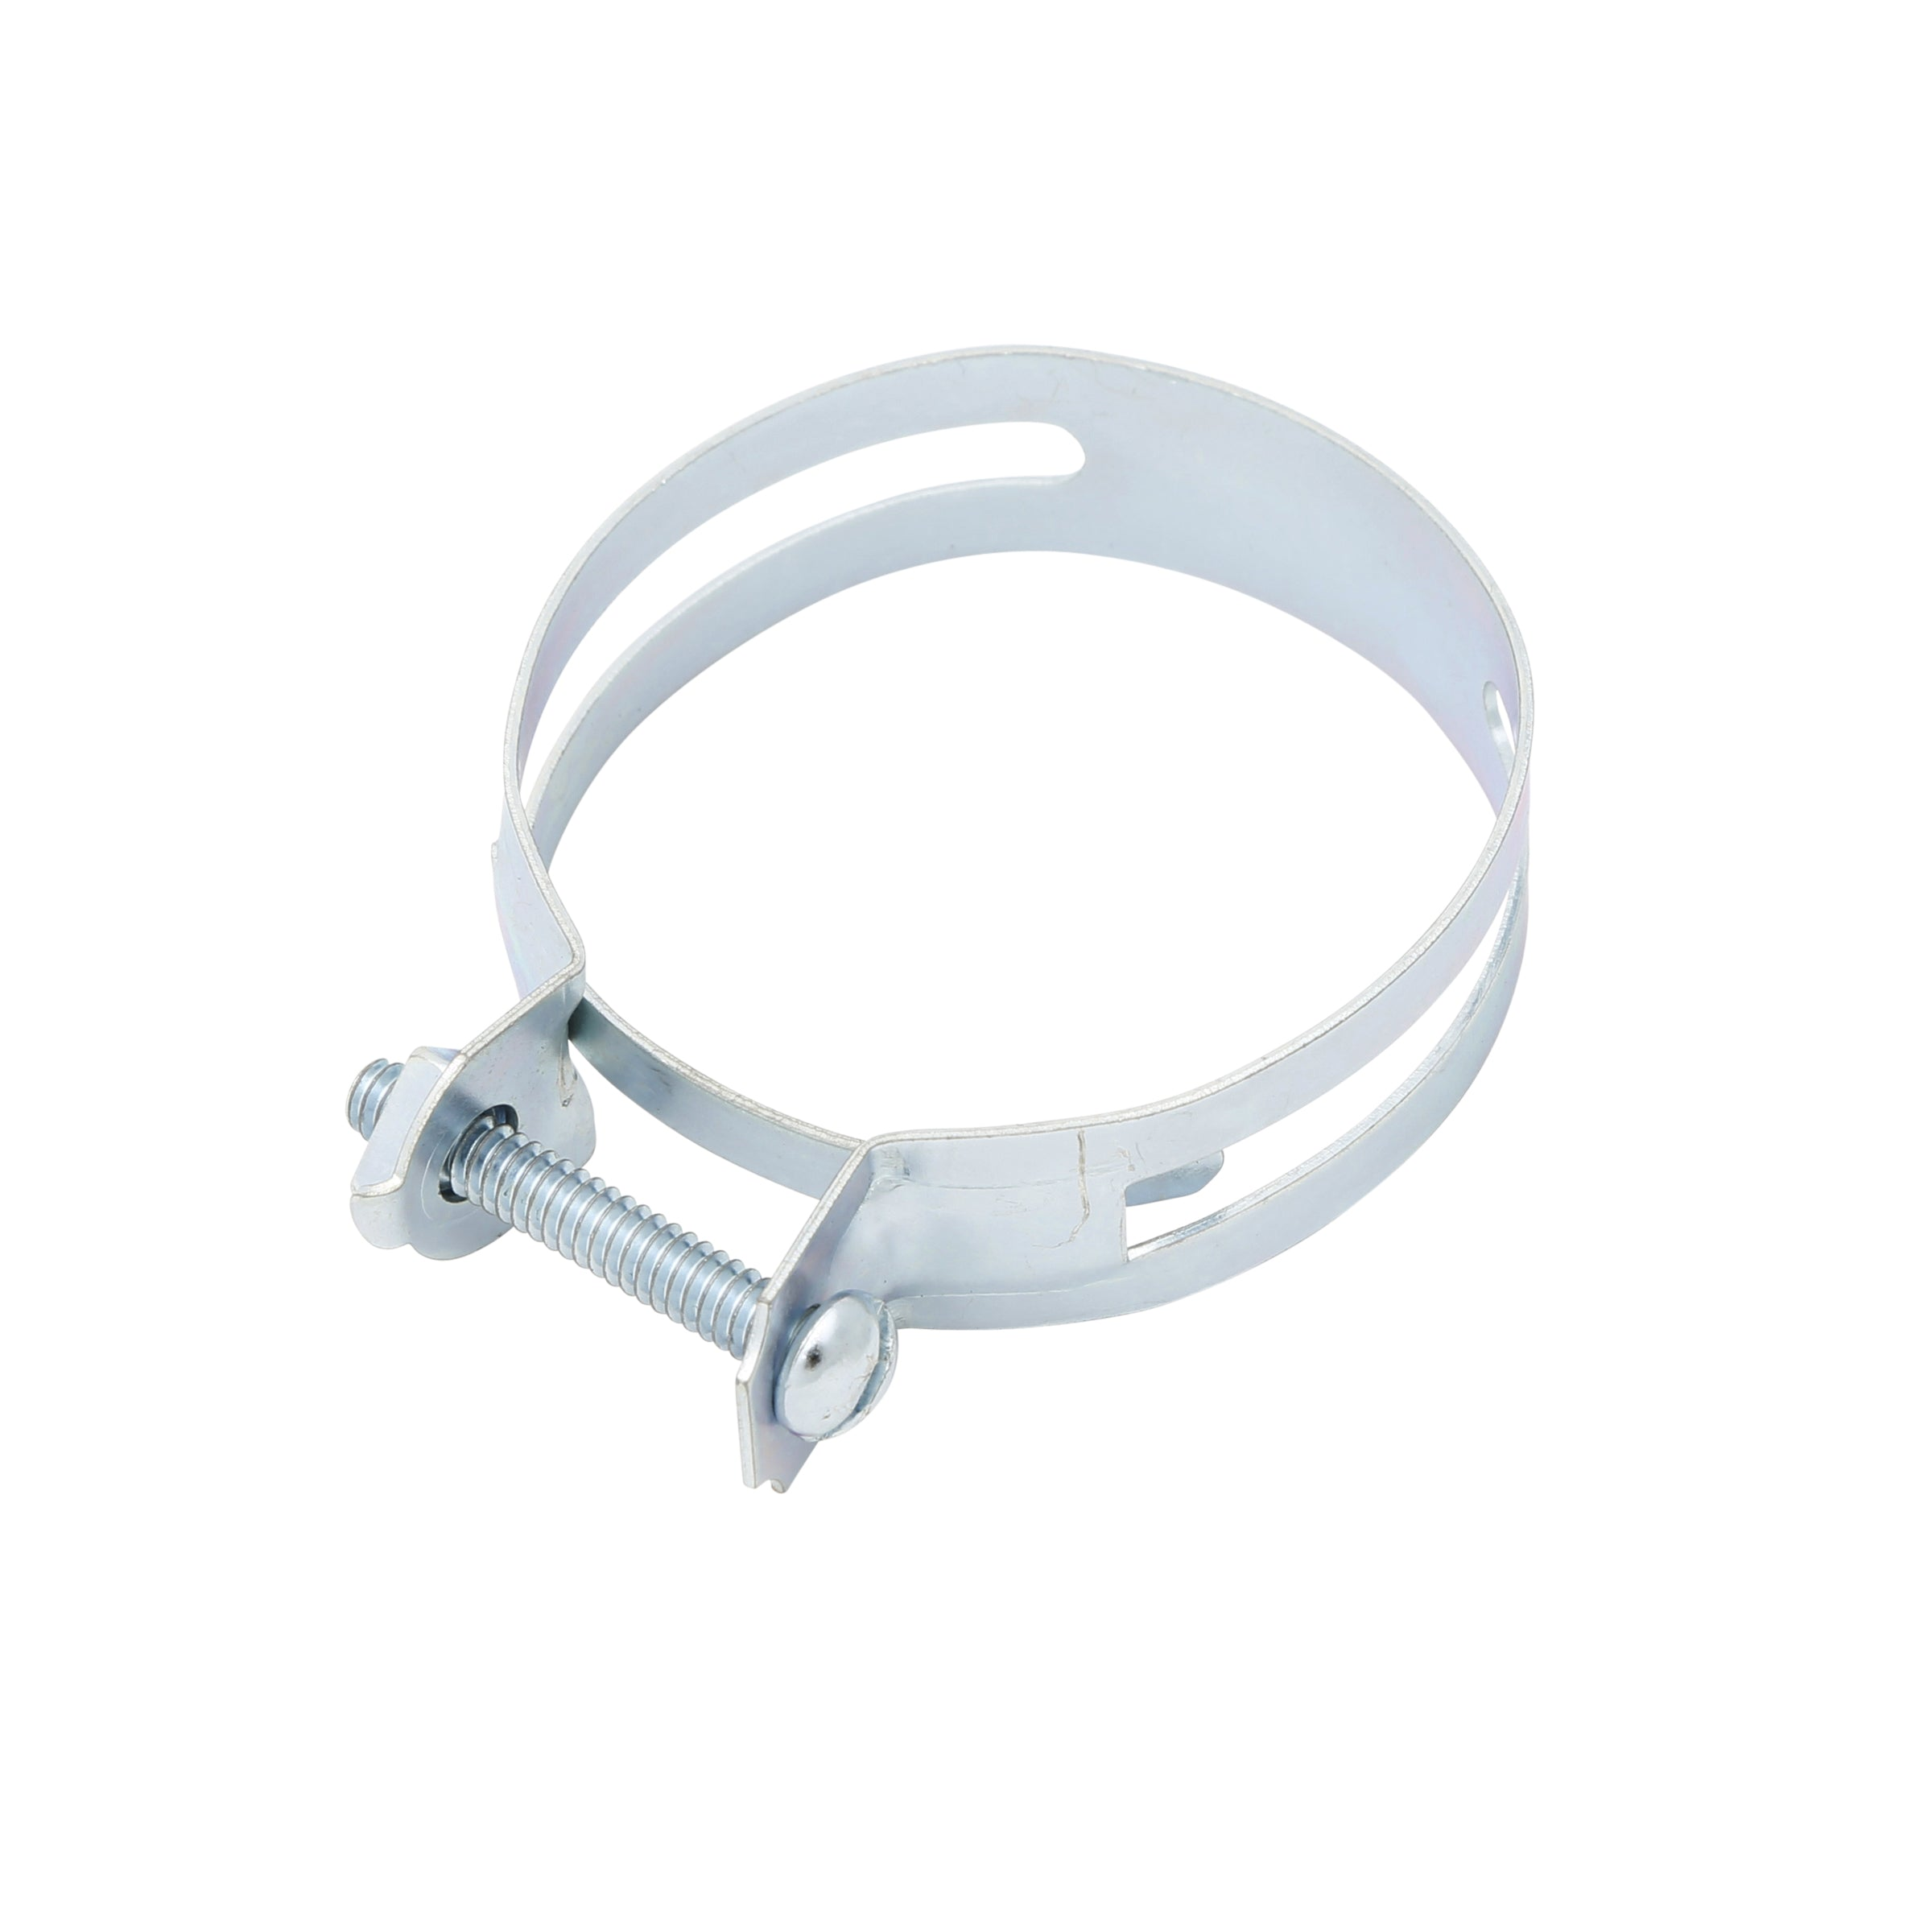 Radiator Hose Clamp for 1-3/4